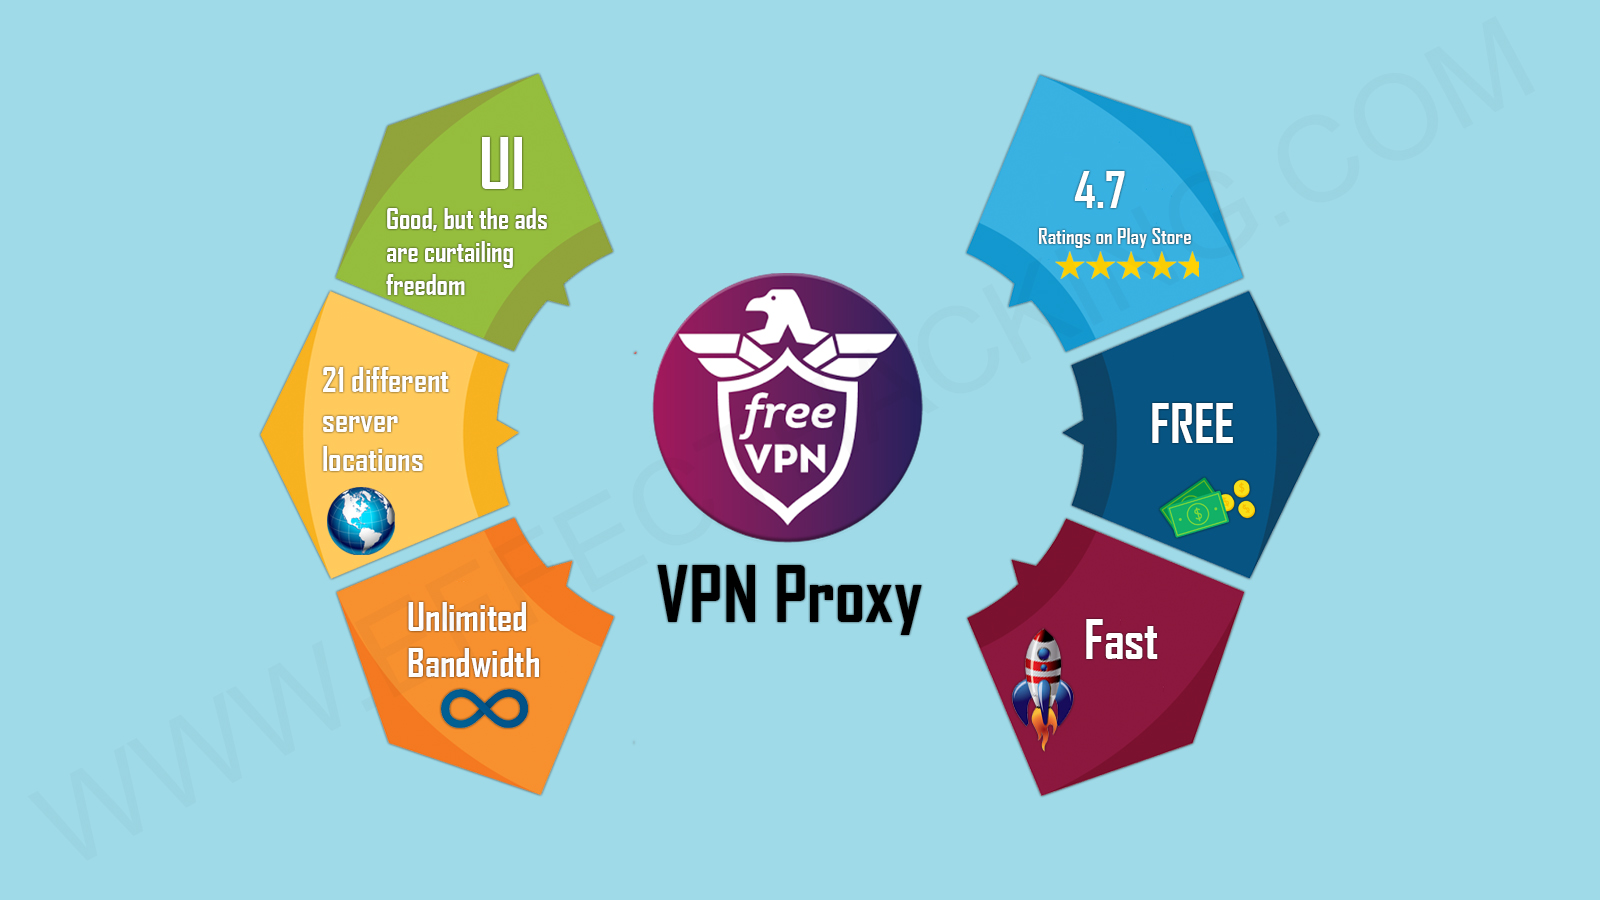 VPN Proxy Free App Infographic